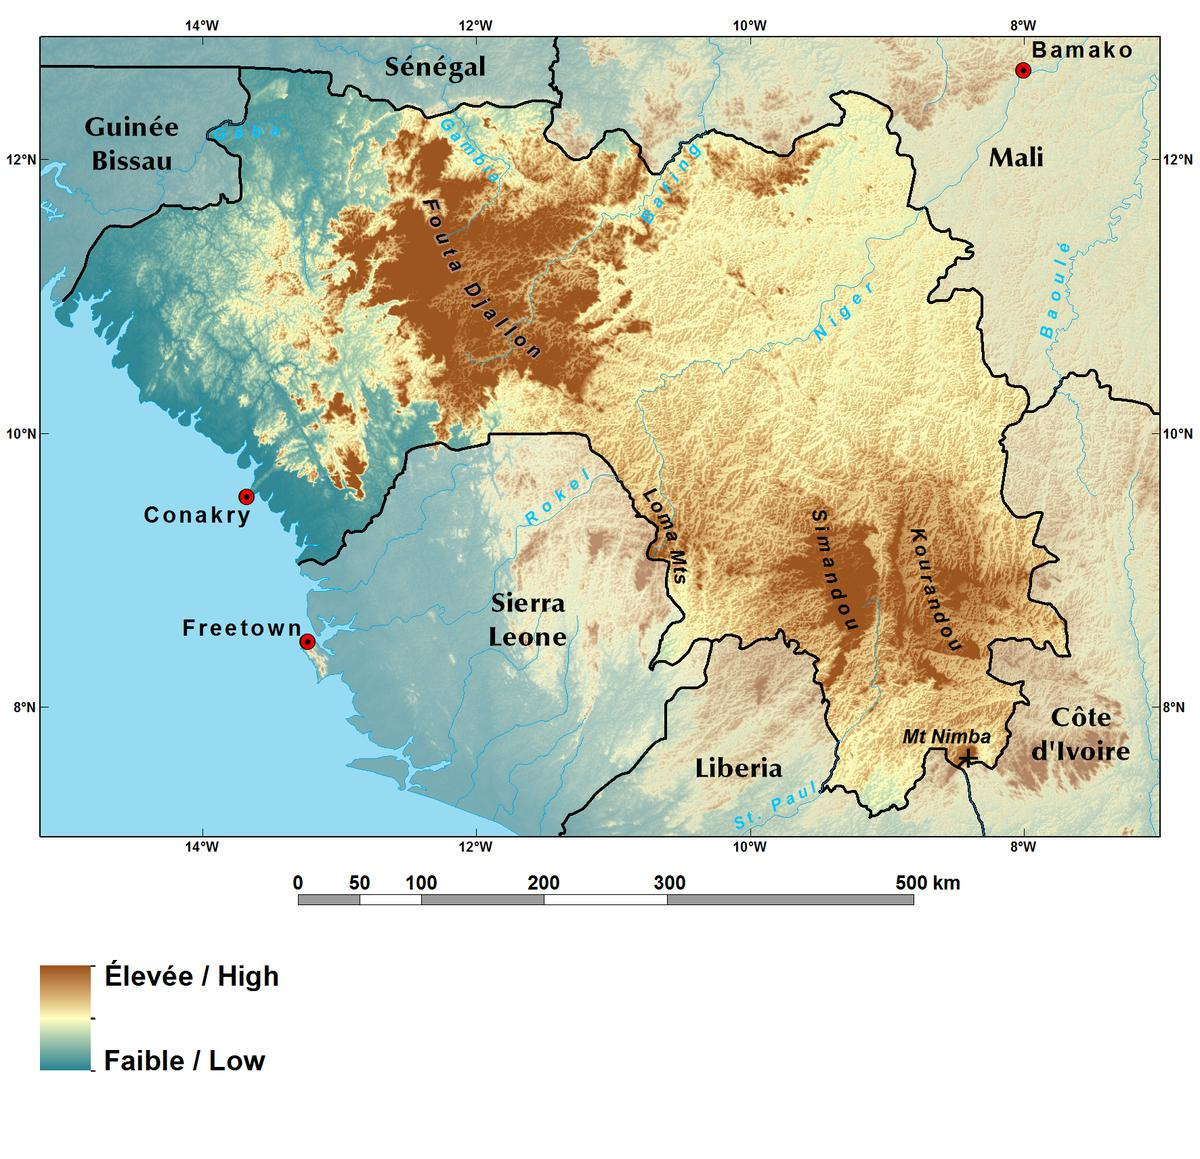 Ecoregions and Topography of Guinea | West Africa